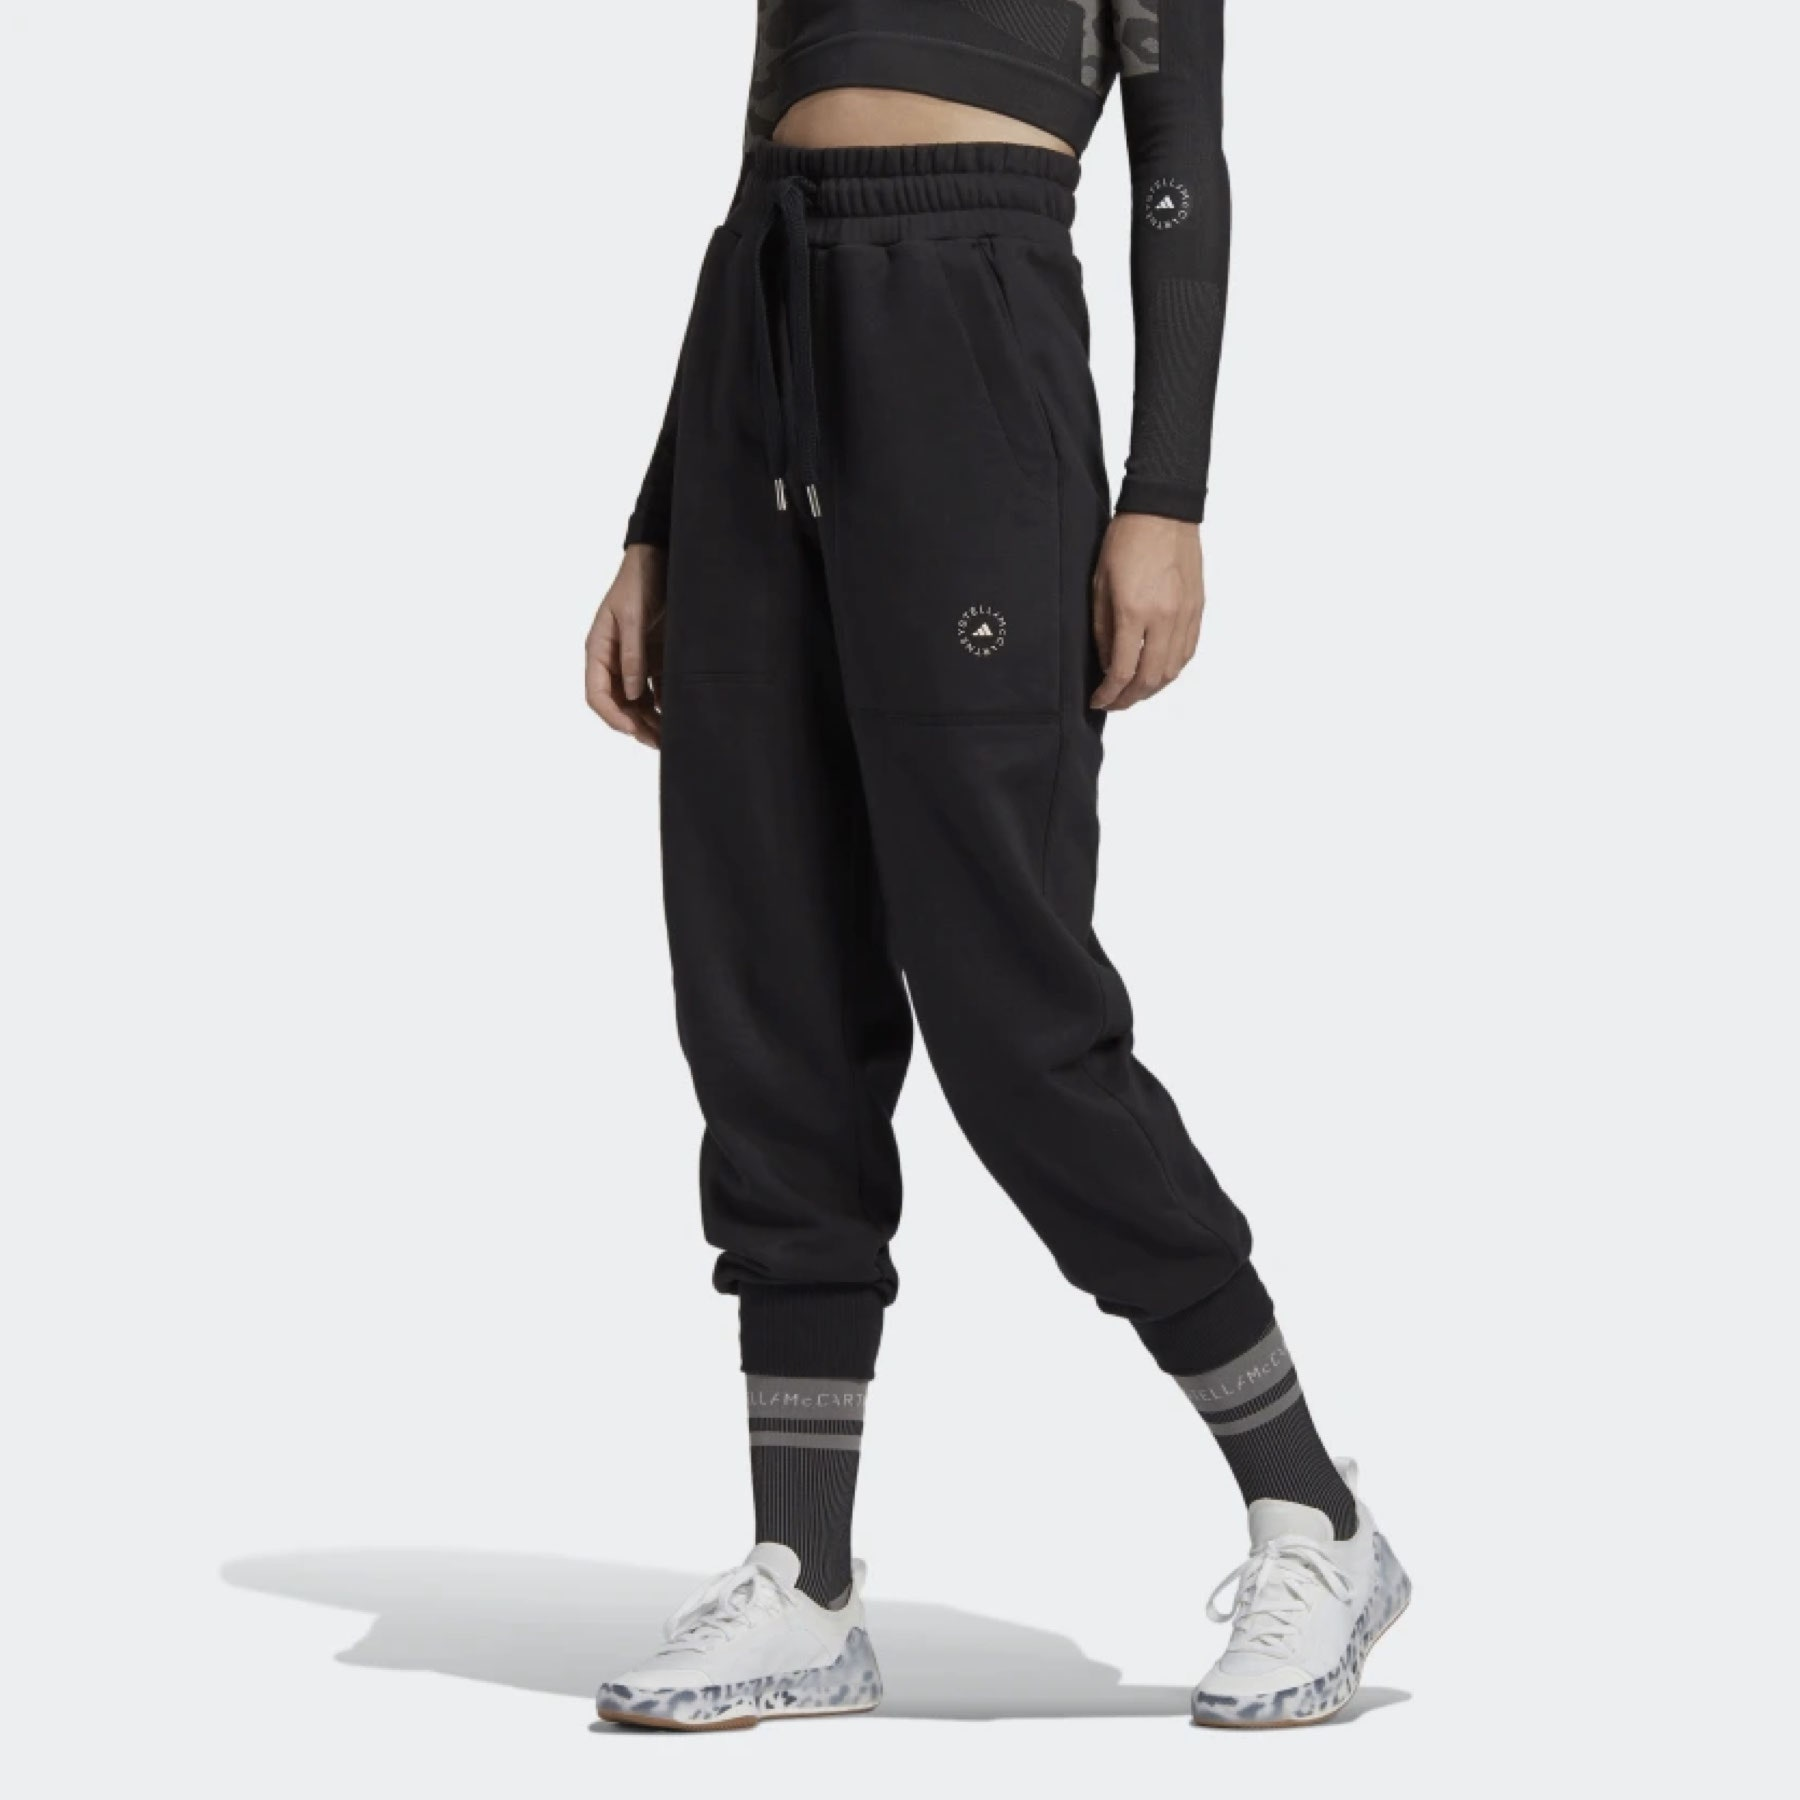 model wearing black sweatpants and white sneakers